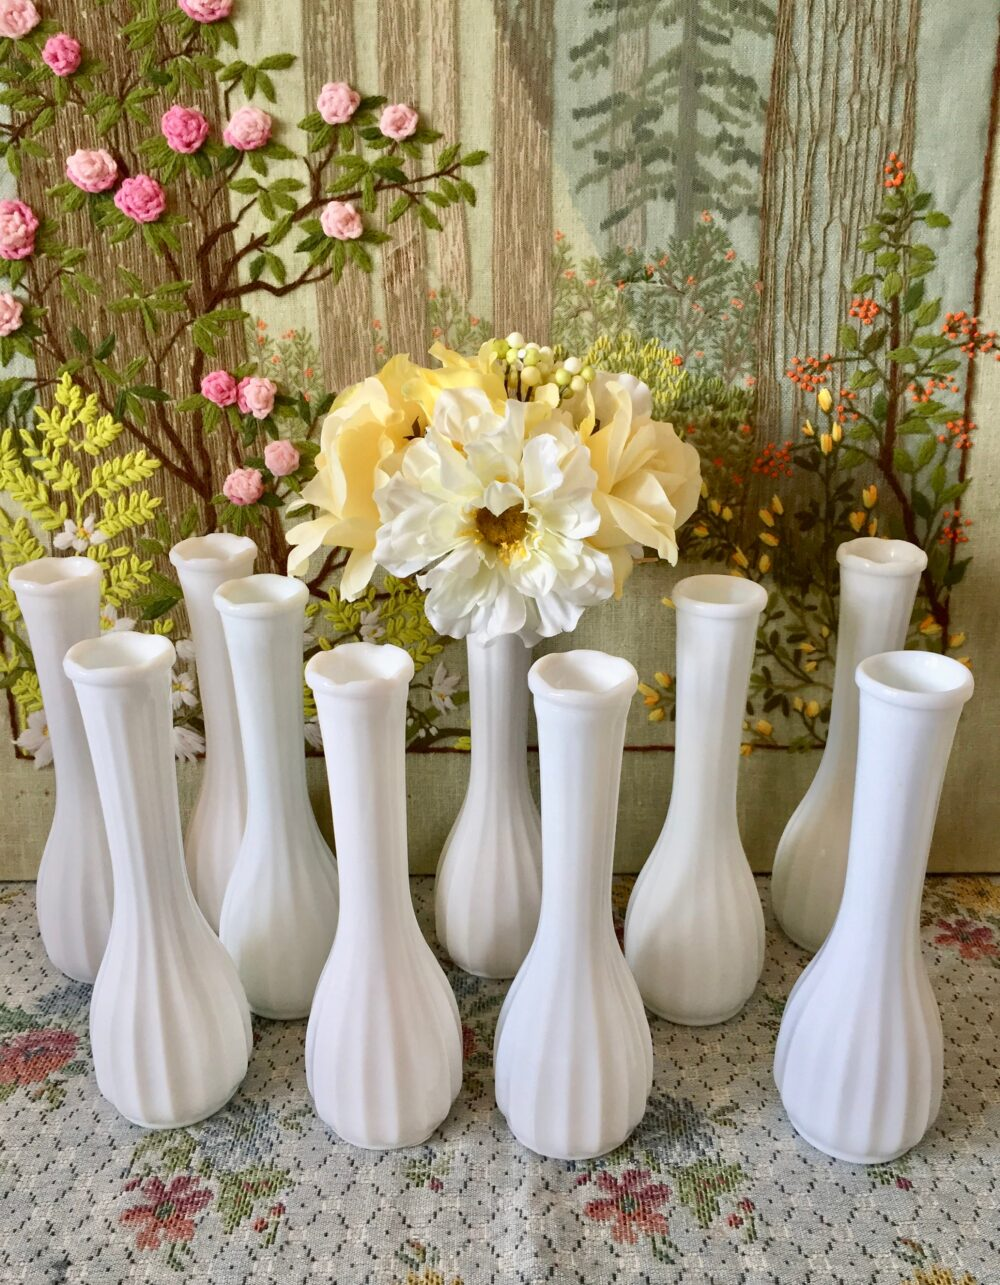 Milk Glass Vases For Flowers Decor Centerpiece Wedding Bud Vase Lot White Bulk Vintage